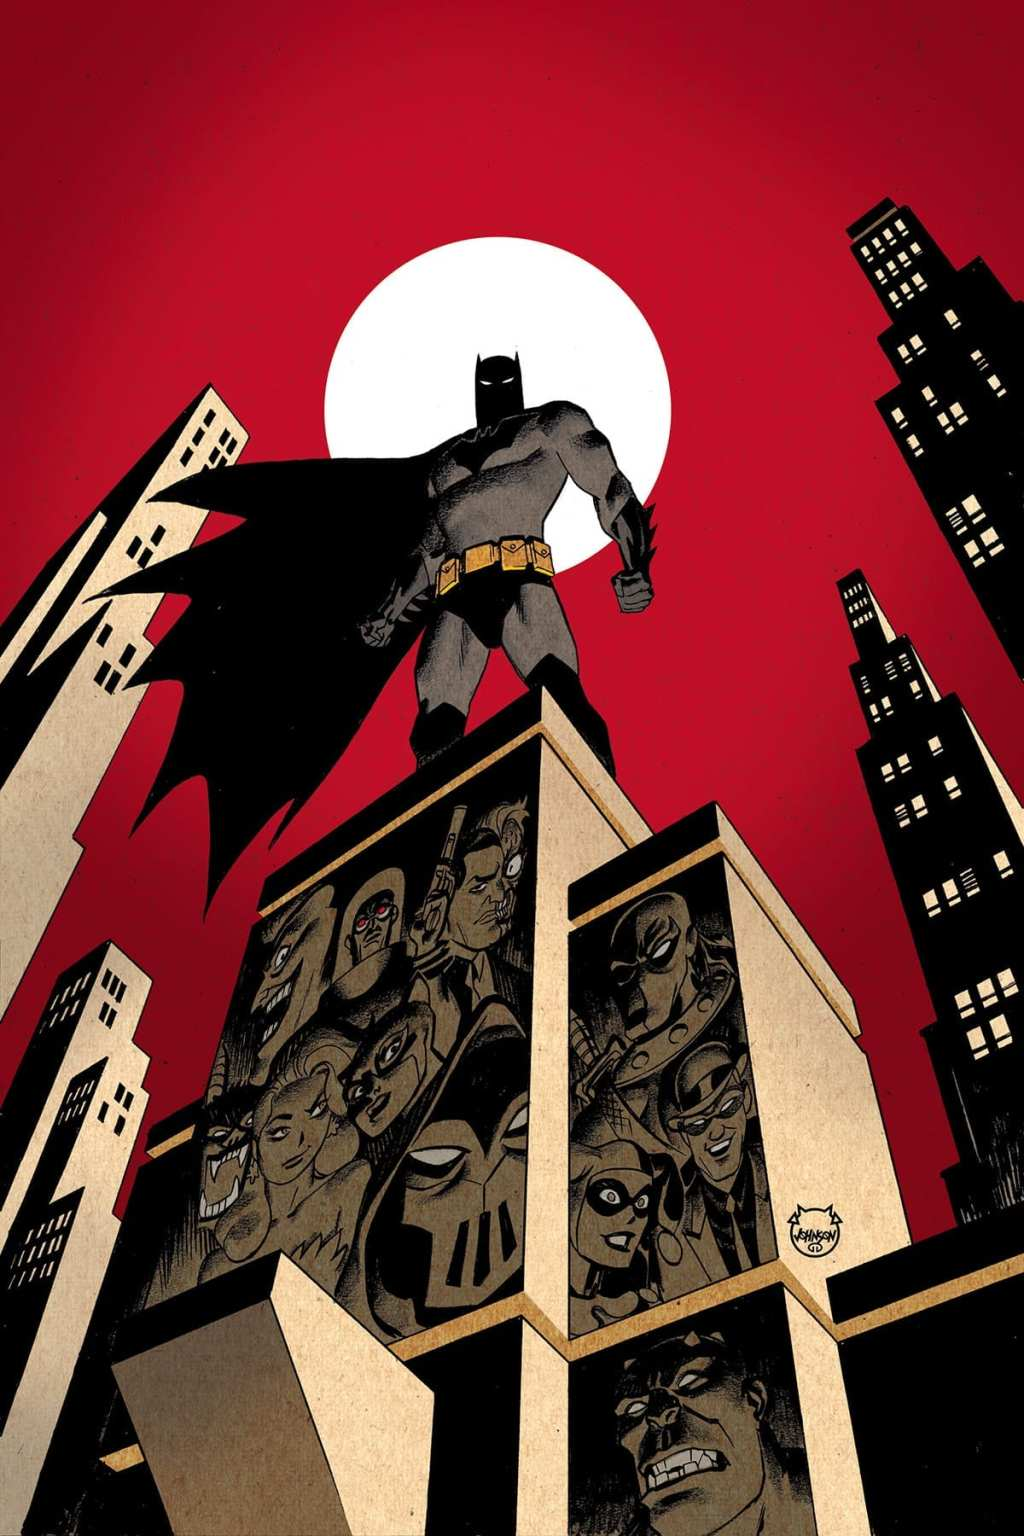 Batman: The Adventures Continue #1 cover by Dave Johnson